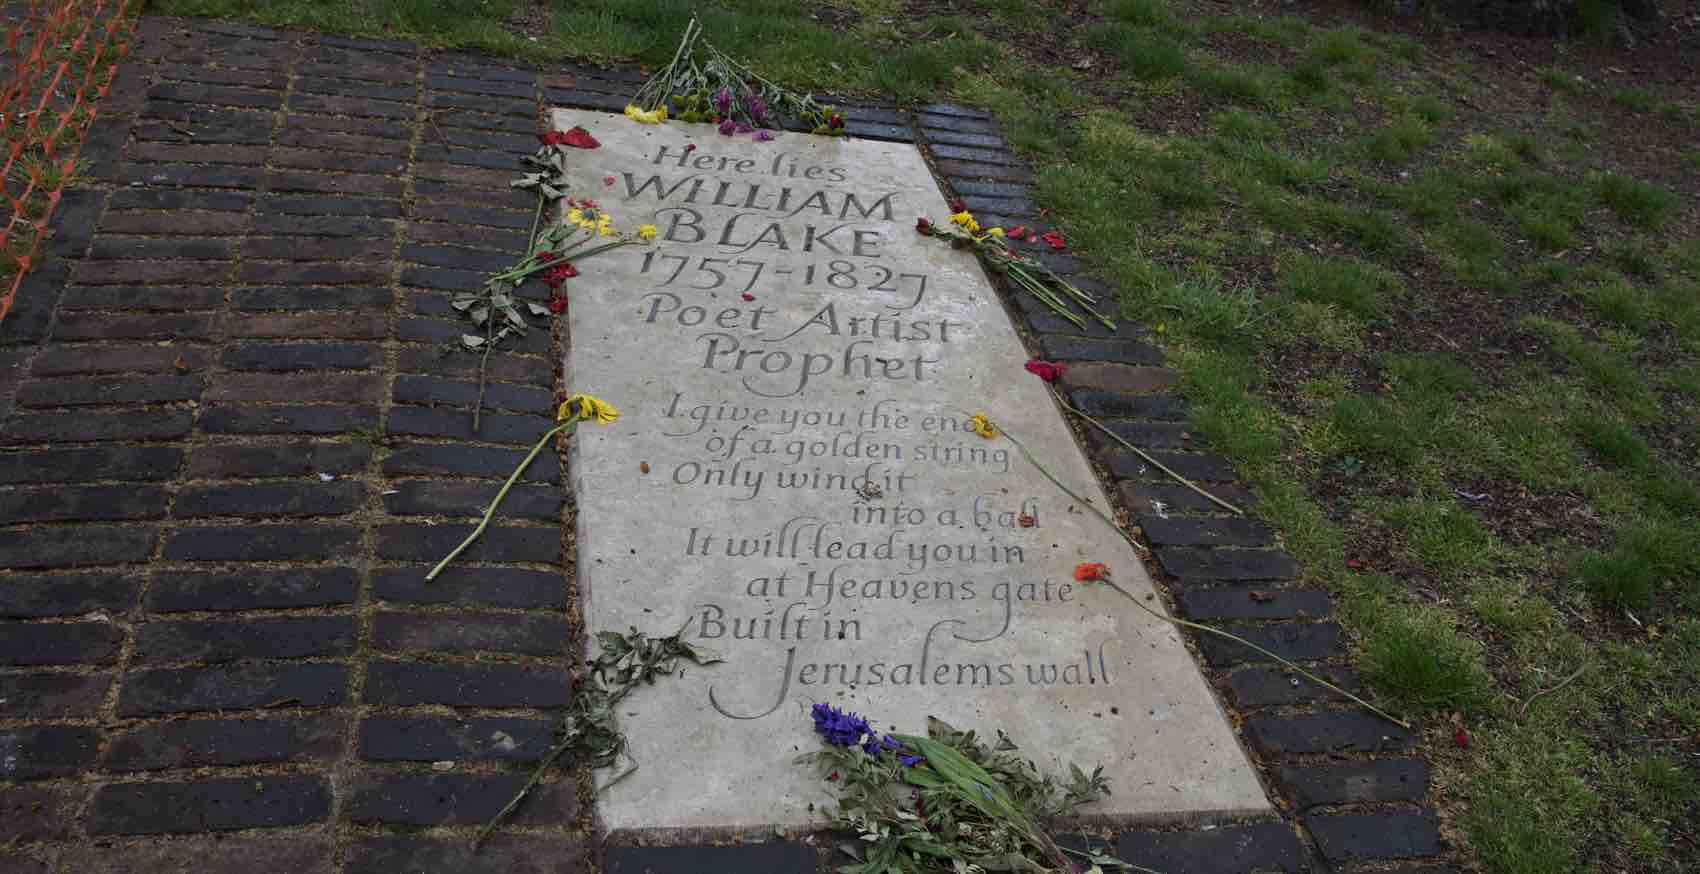 Popular Cemetery in London: William Blake - His exact place is not known